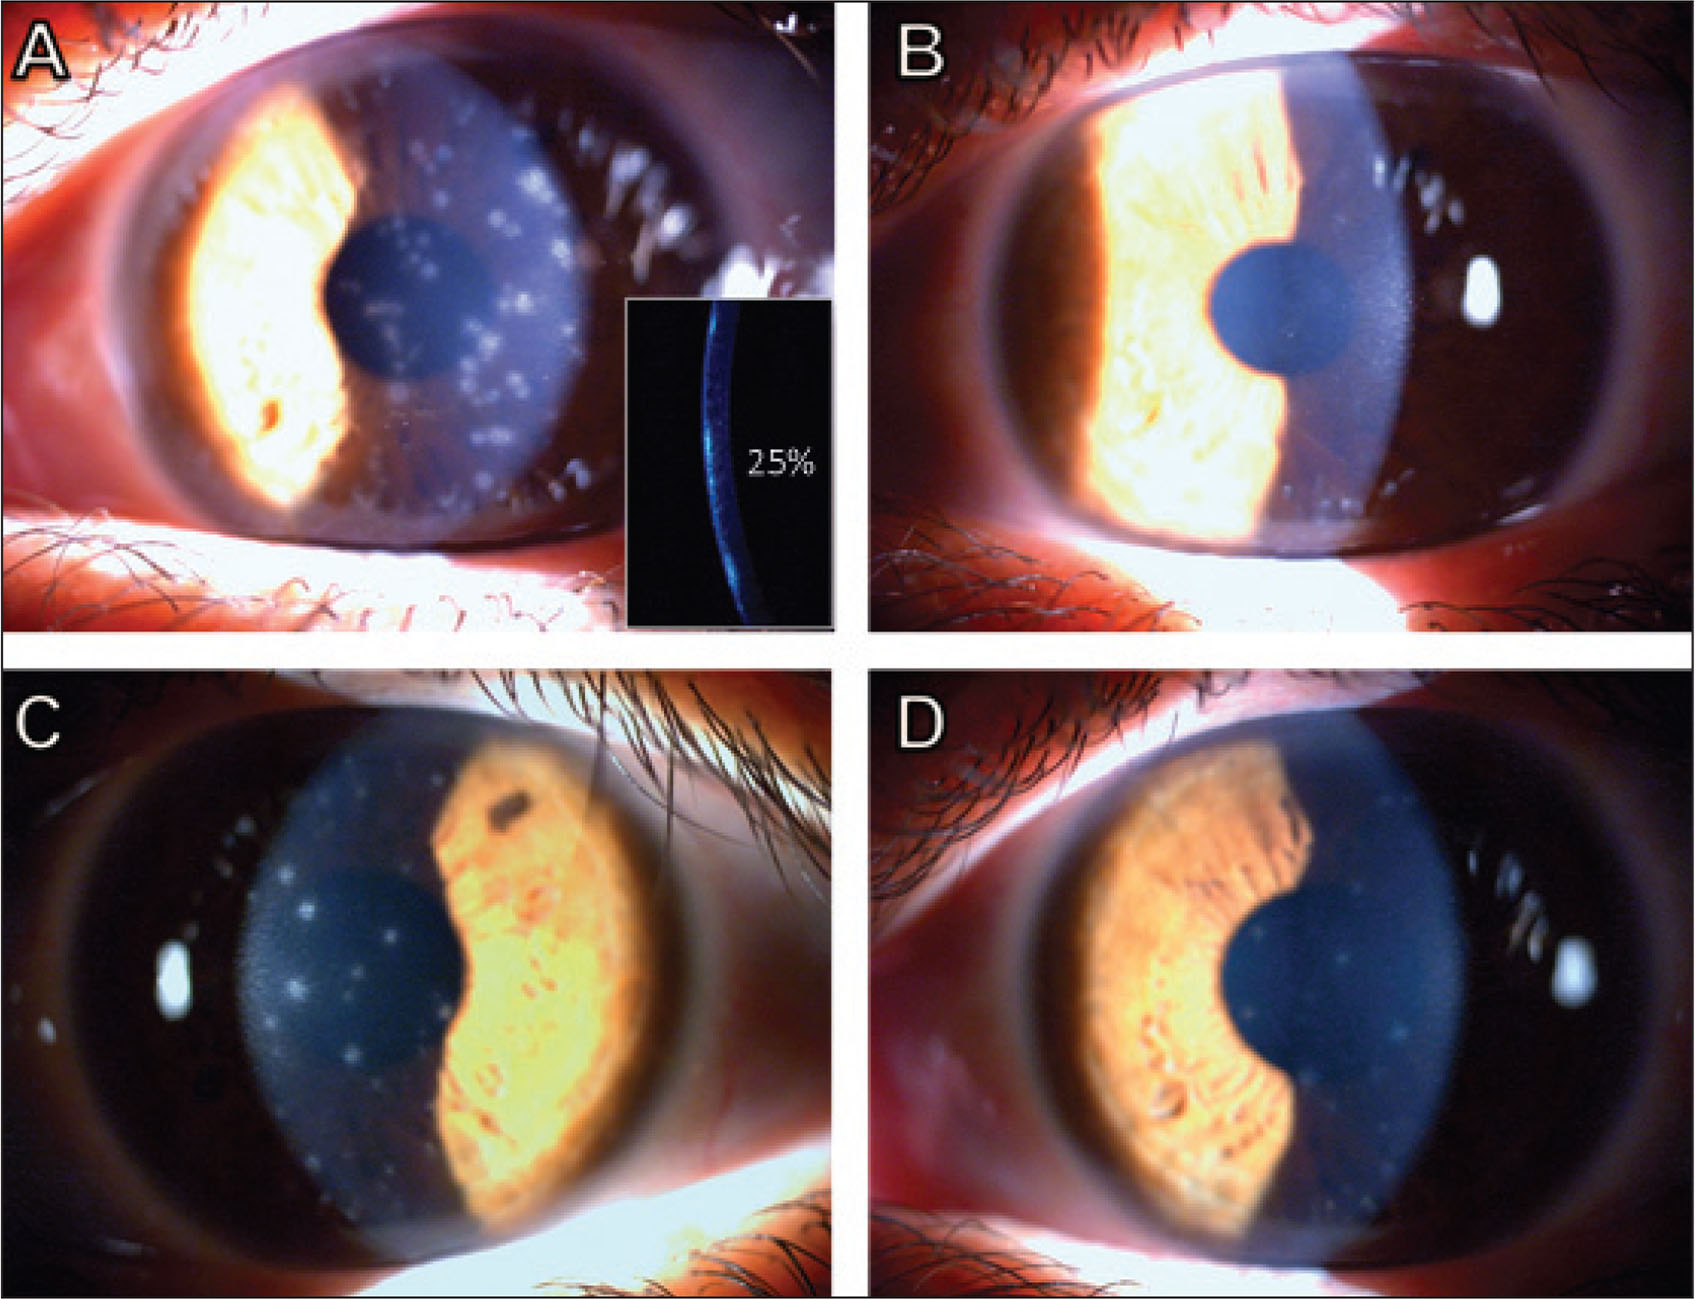 A 39-year-old patient with multiple adenoviral scars 1 year after acute epidemic keratoconjunctivitis. Preoperative corrected distance visual acuity (CDVA) was 20/40. (A) Nummular adenoviral scars in the anterior stroma affecting 25% of corneal thickness. (B) One month after surface ablation (80-µm ablation depth), uncorrected distance visual acuity (UDVA) was 20/20. (C) Two months after surface ablation. Recurrence of subepithelial infiltrates, CDVA decreased to 20/100. (D) Improvement of subepithelial infiltrates after 1 month using steroid drops, with UDVA back to 20/20.